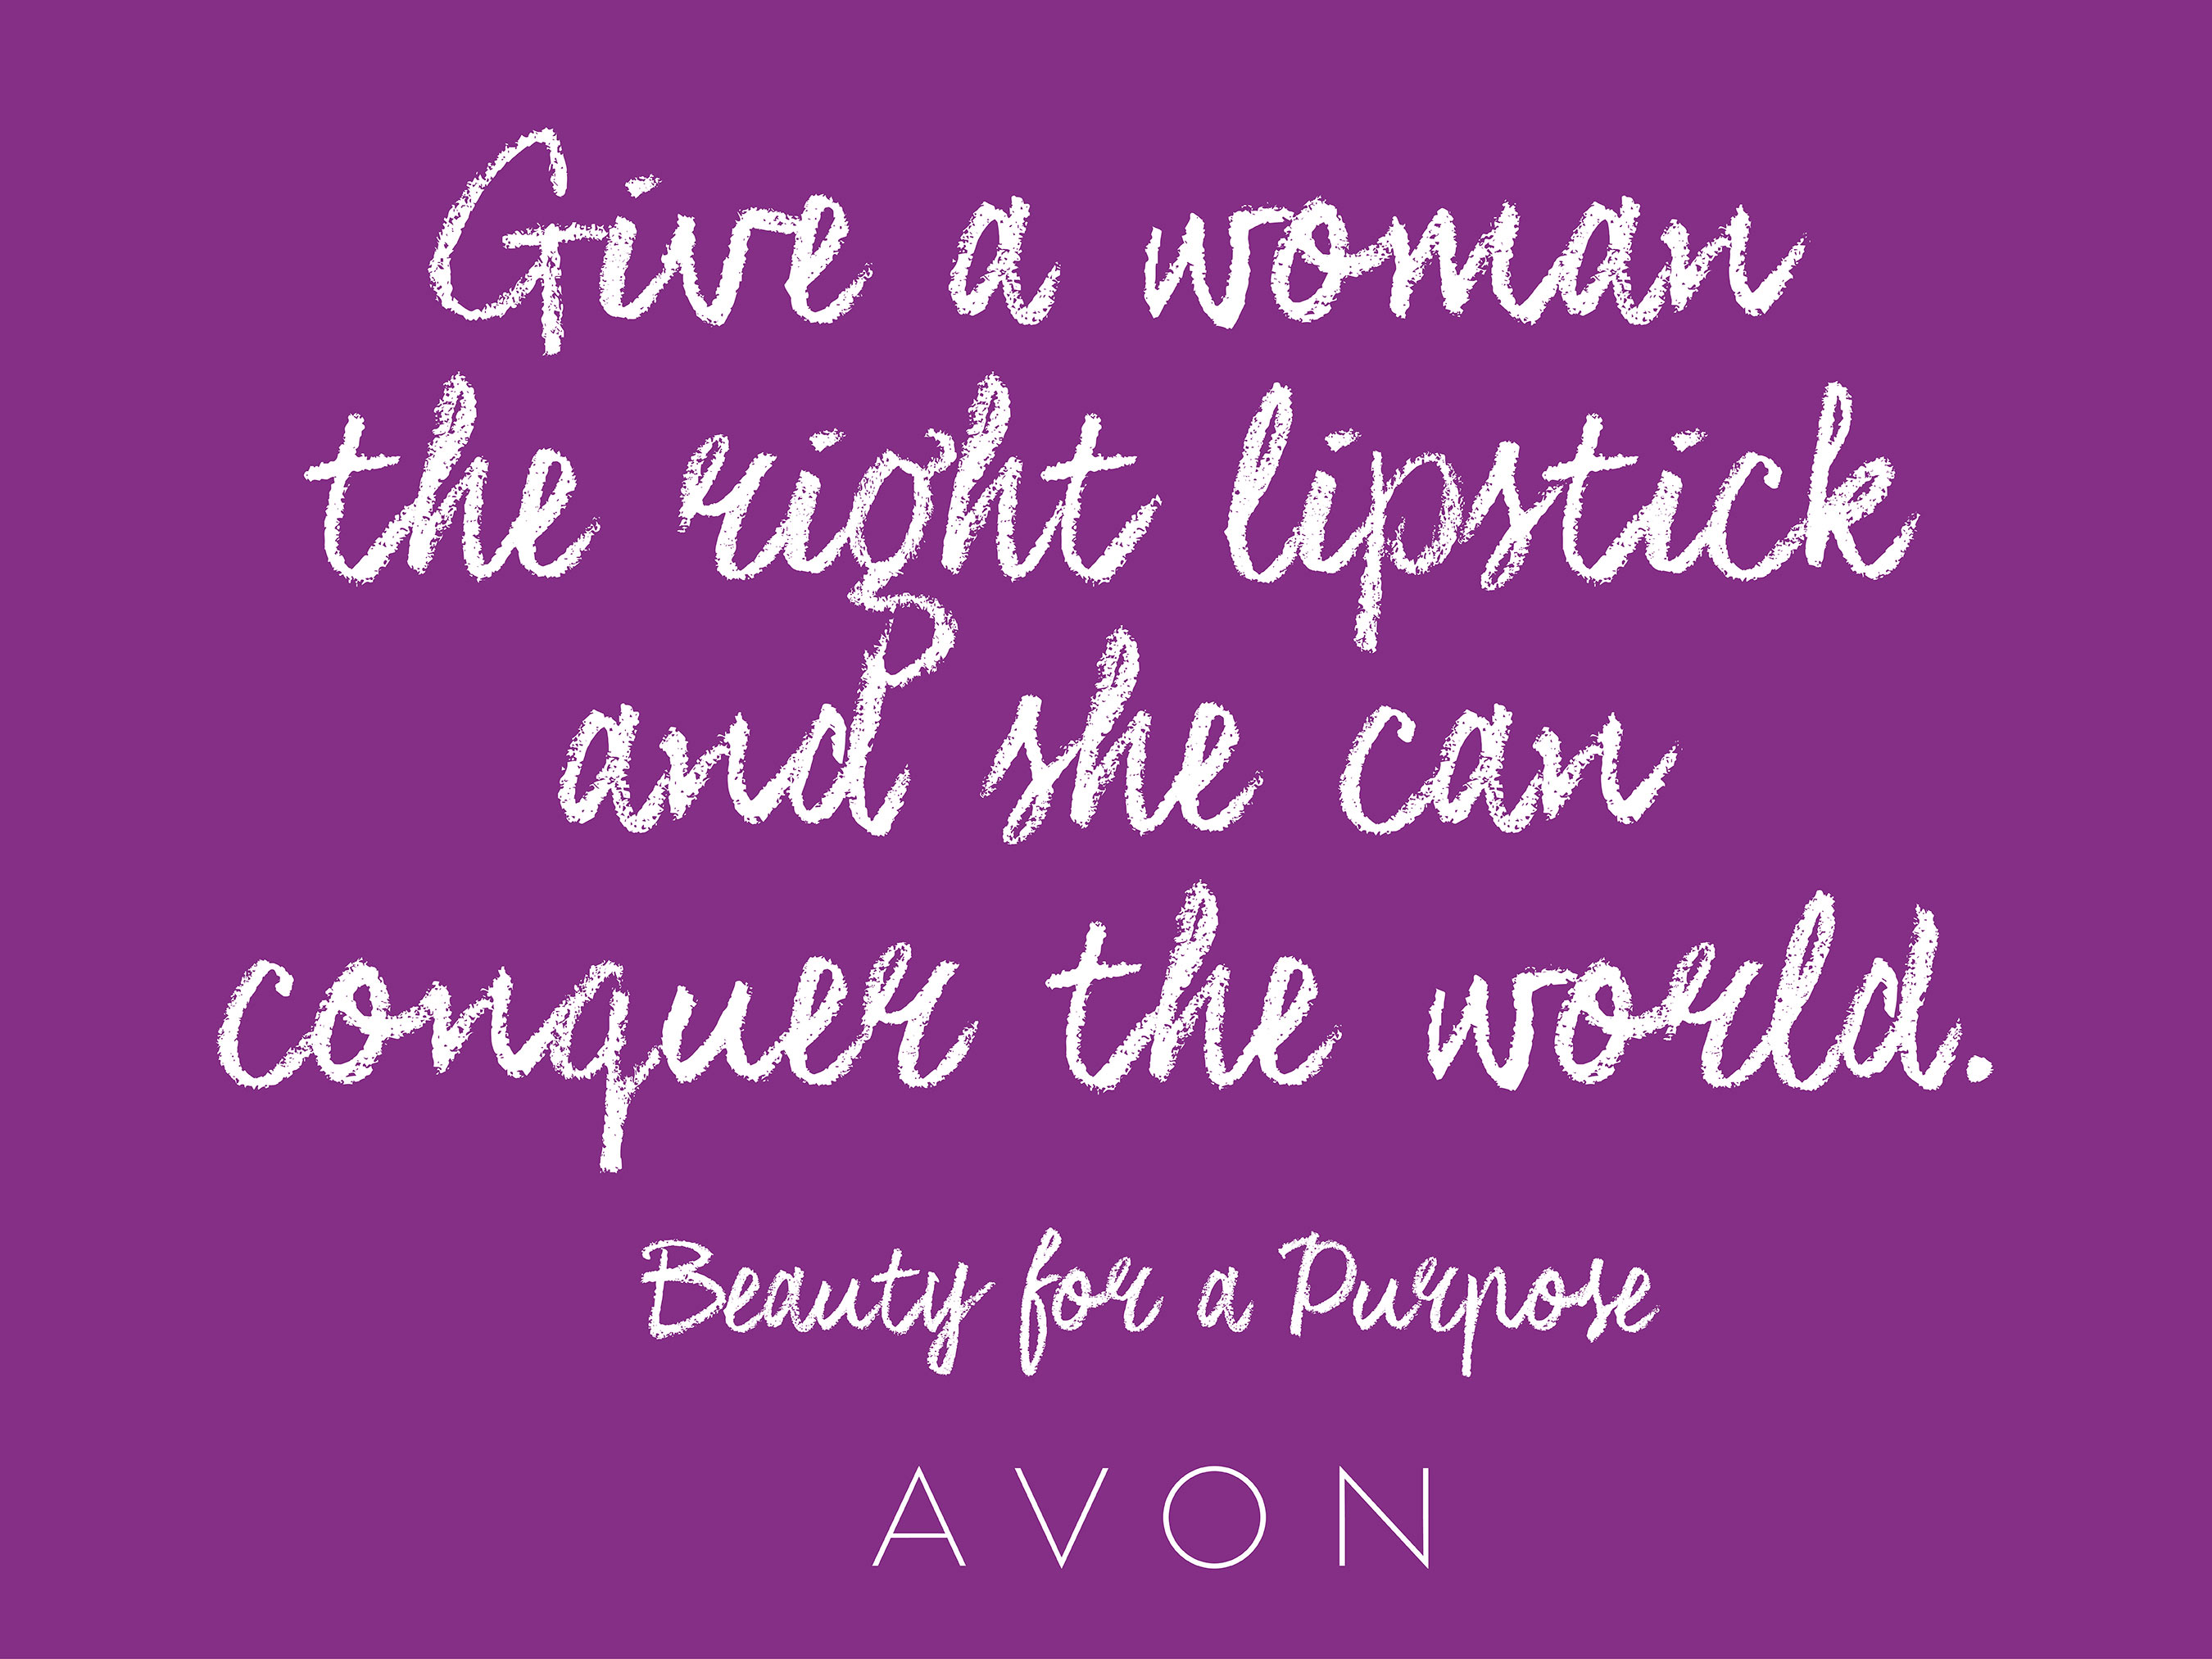 Quotes About Daughters And Fathers Avon Announces Beauty ...